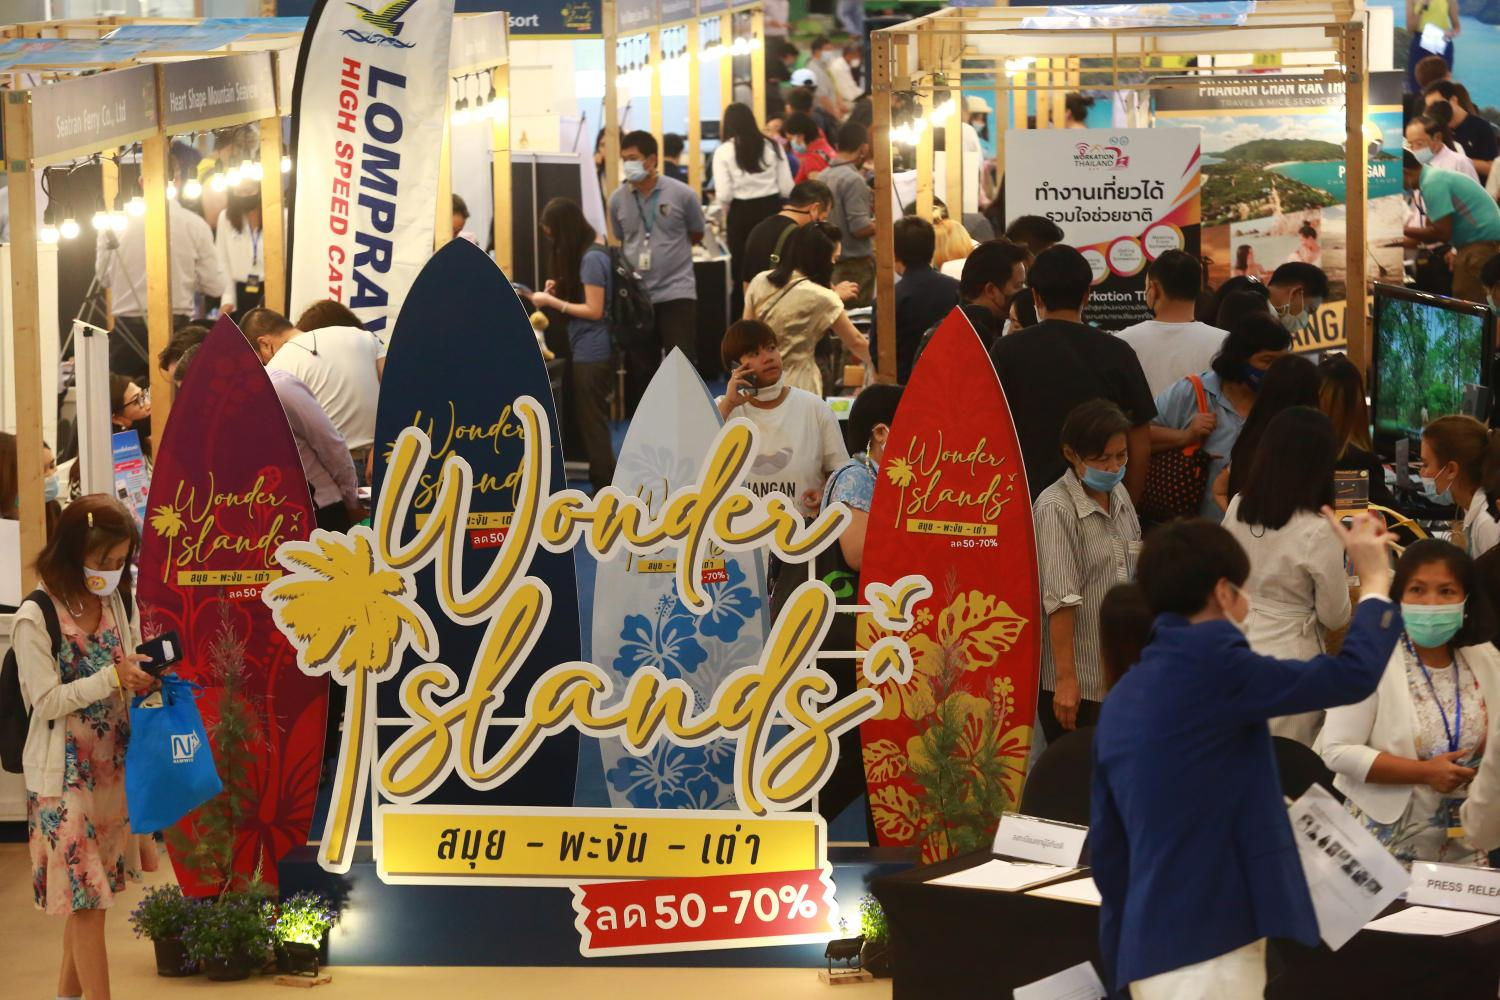 The festive atmosphere as consumers look for travel deals at the 'Wonder Islands Samui, Phangan, Tao' event that started on Thursday at CentralWorld, Eden Zone, 1st floor.Somchai Poomlard